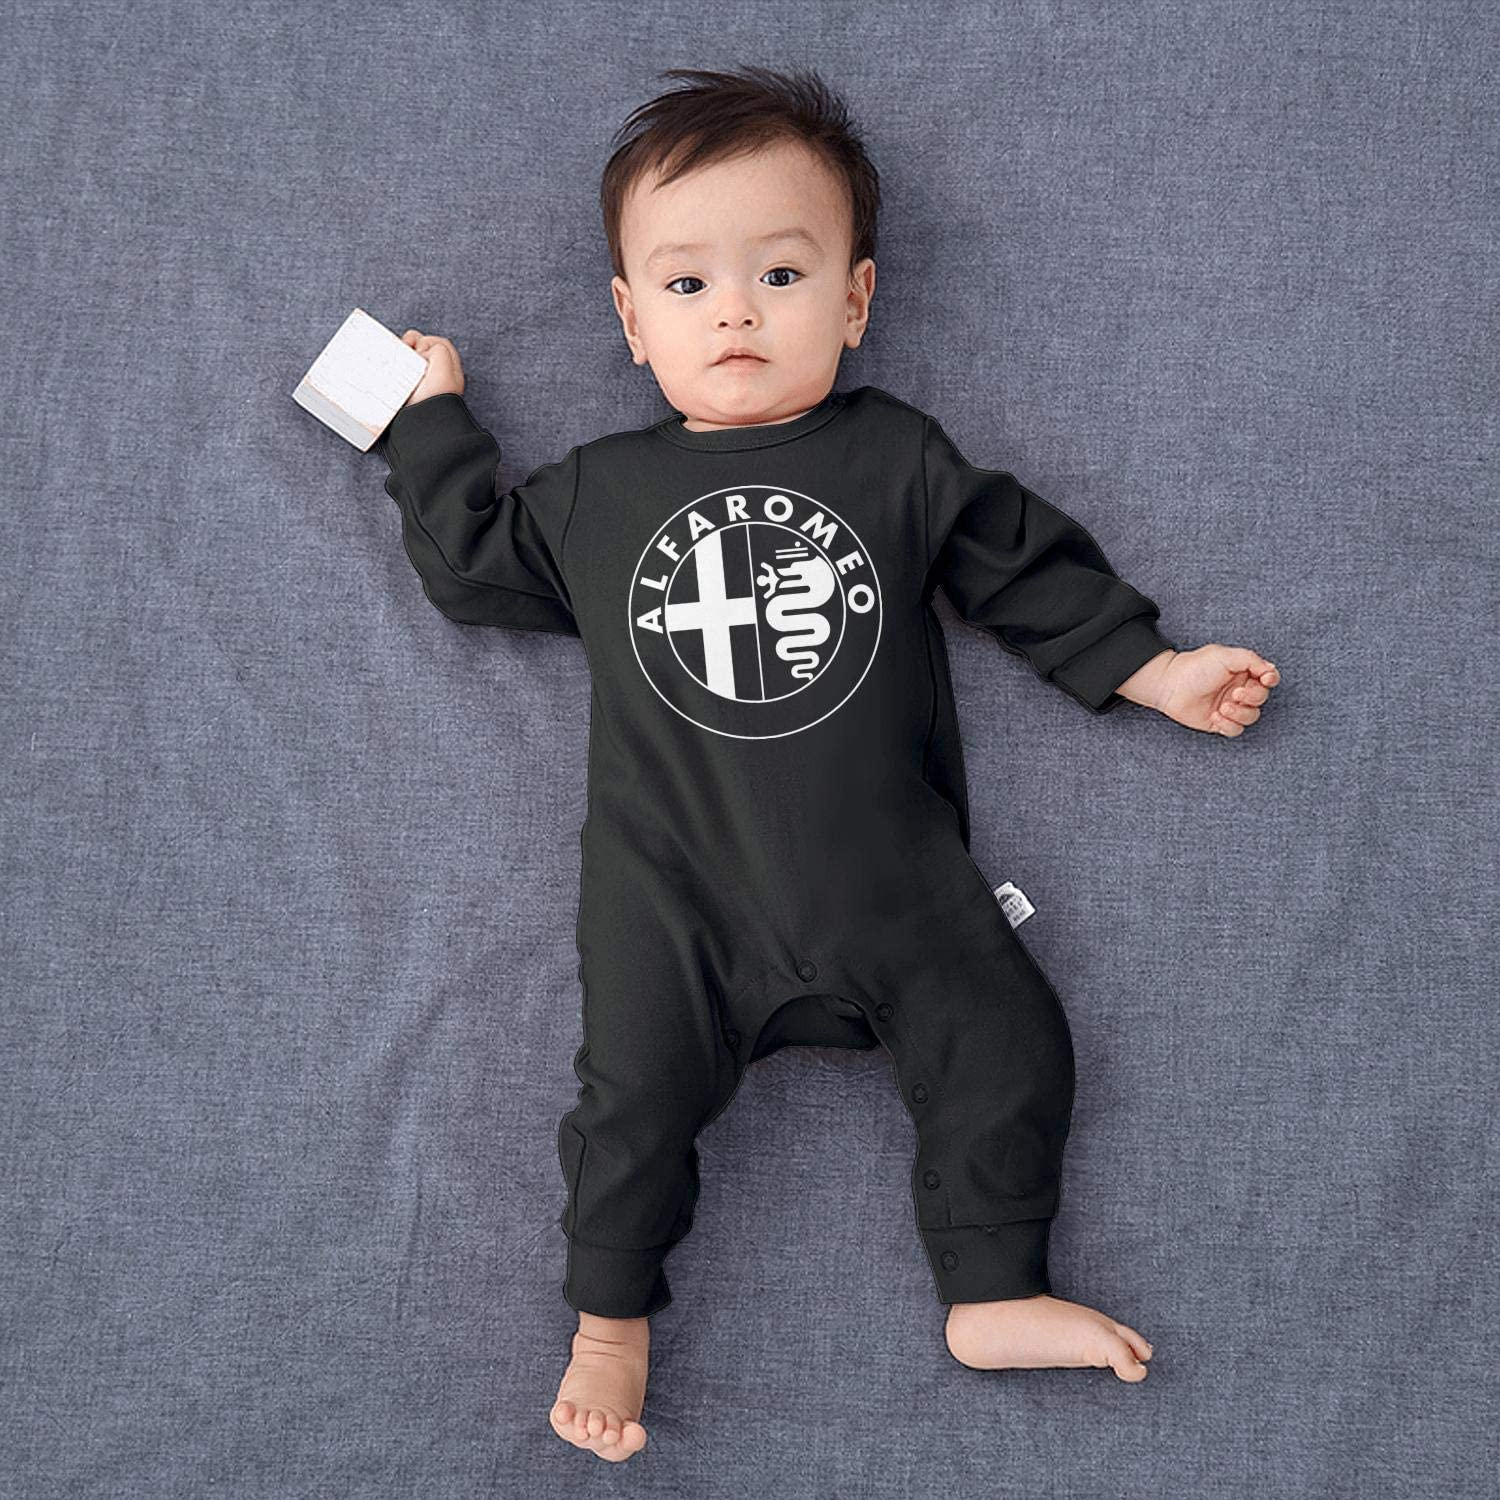 Gorgeous ornaments Indian Motorcycle Logo Neutral Short-Sleeved Blouse Jumpsuit Jumpsuit with Suit Baby Boy//Girl